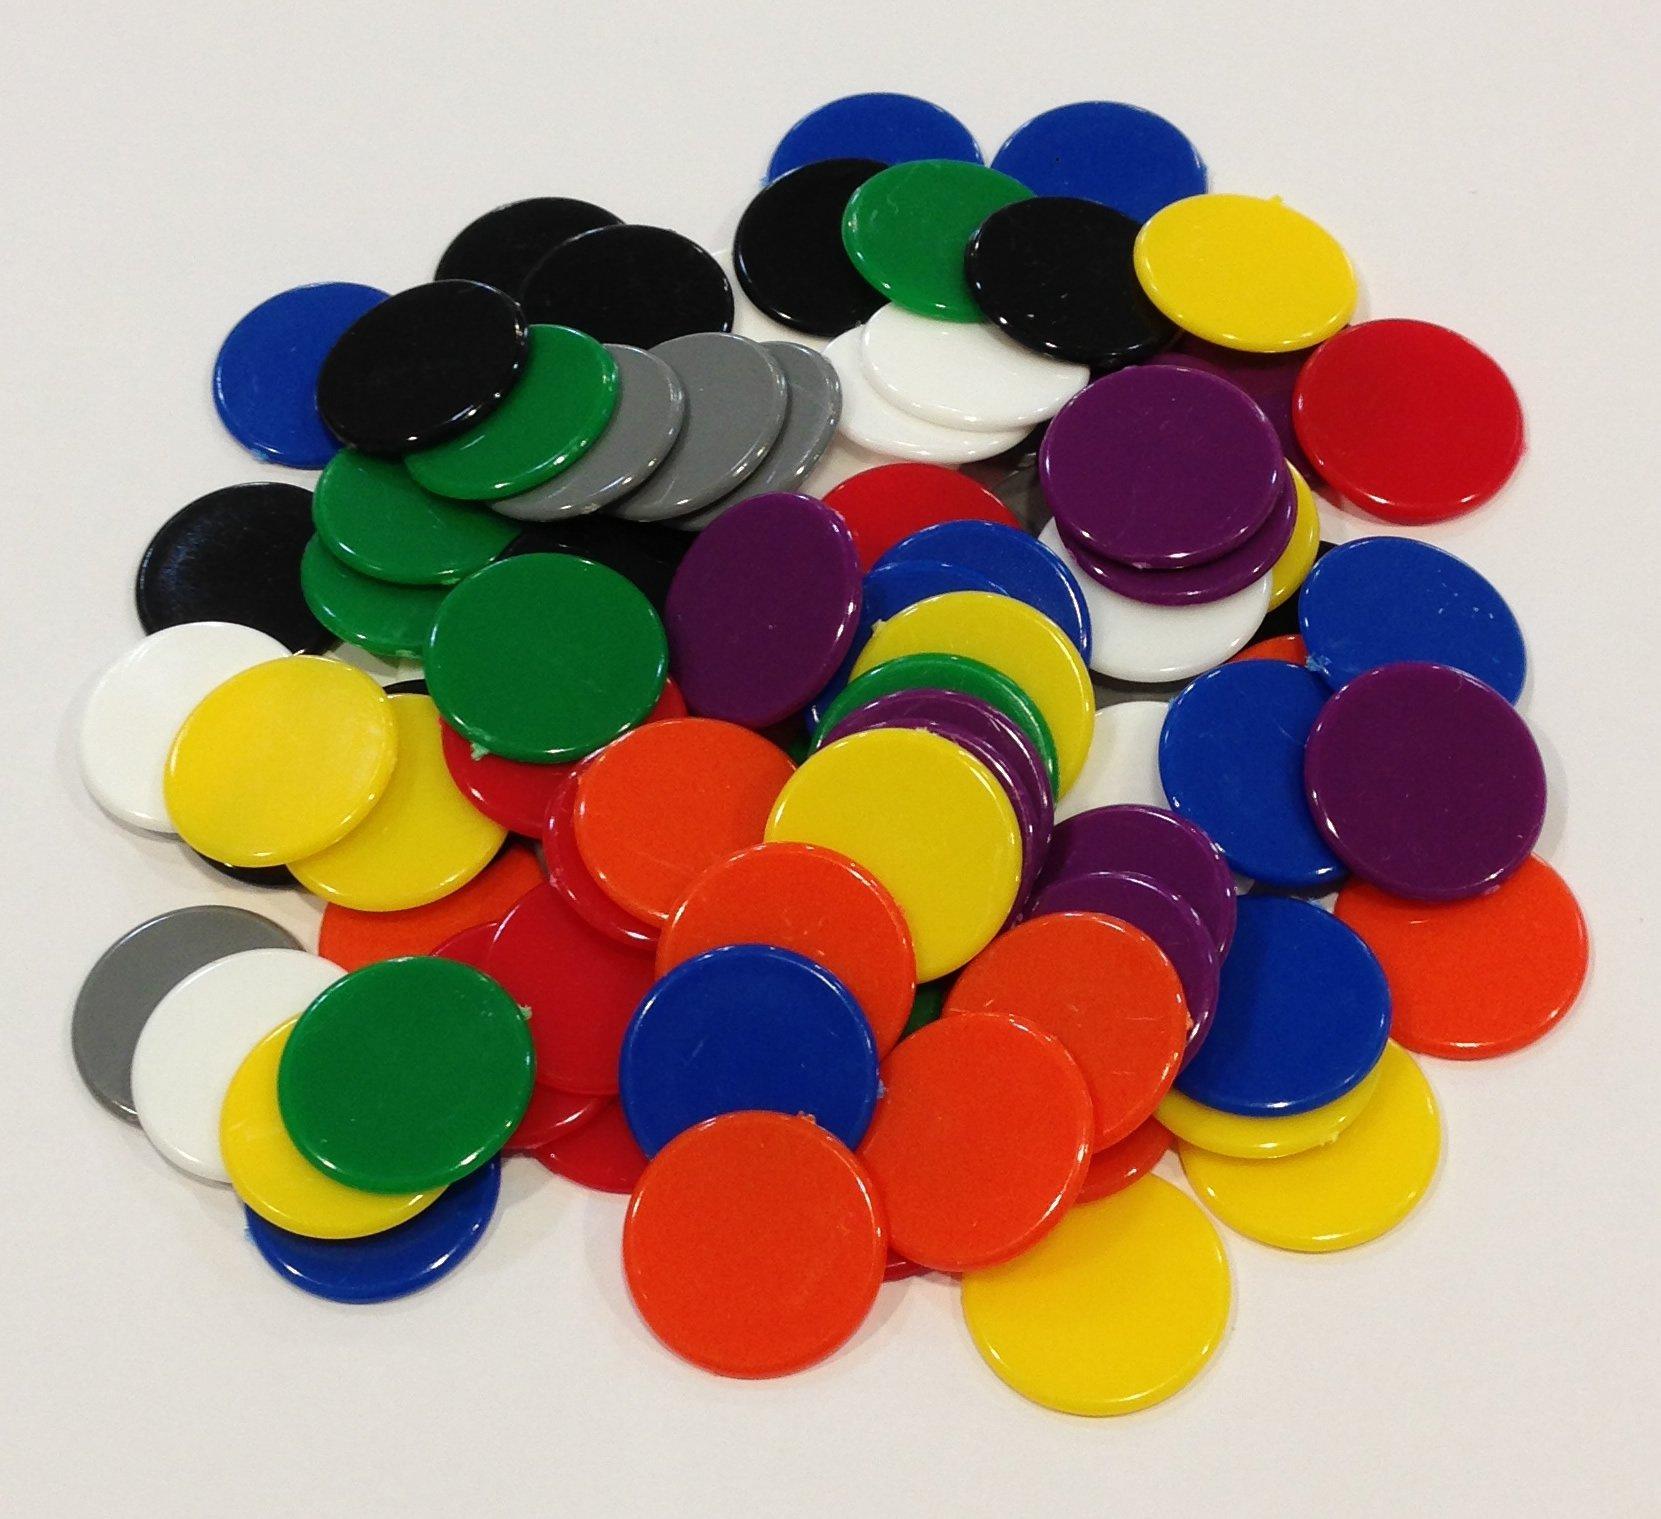 Plastic Counters: Black, Grey, White, Red, Orange, Yellow, Green, Blue, and Purple Color Gaming Tokens (Hard Colored Plastic Coins, Markers and Discs for Bingo Chips, Tiddly Winks, Checkers, and Other Board Game Playing Pieces)